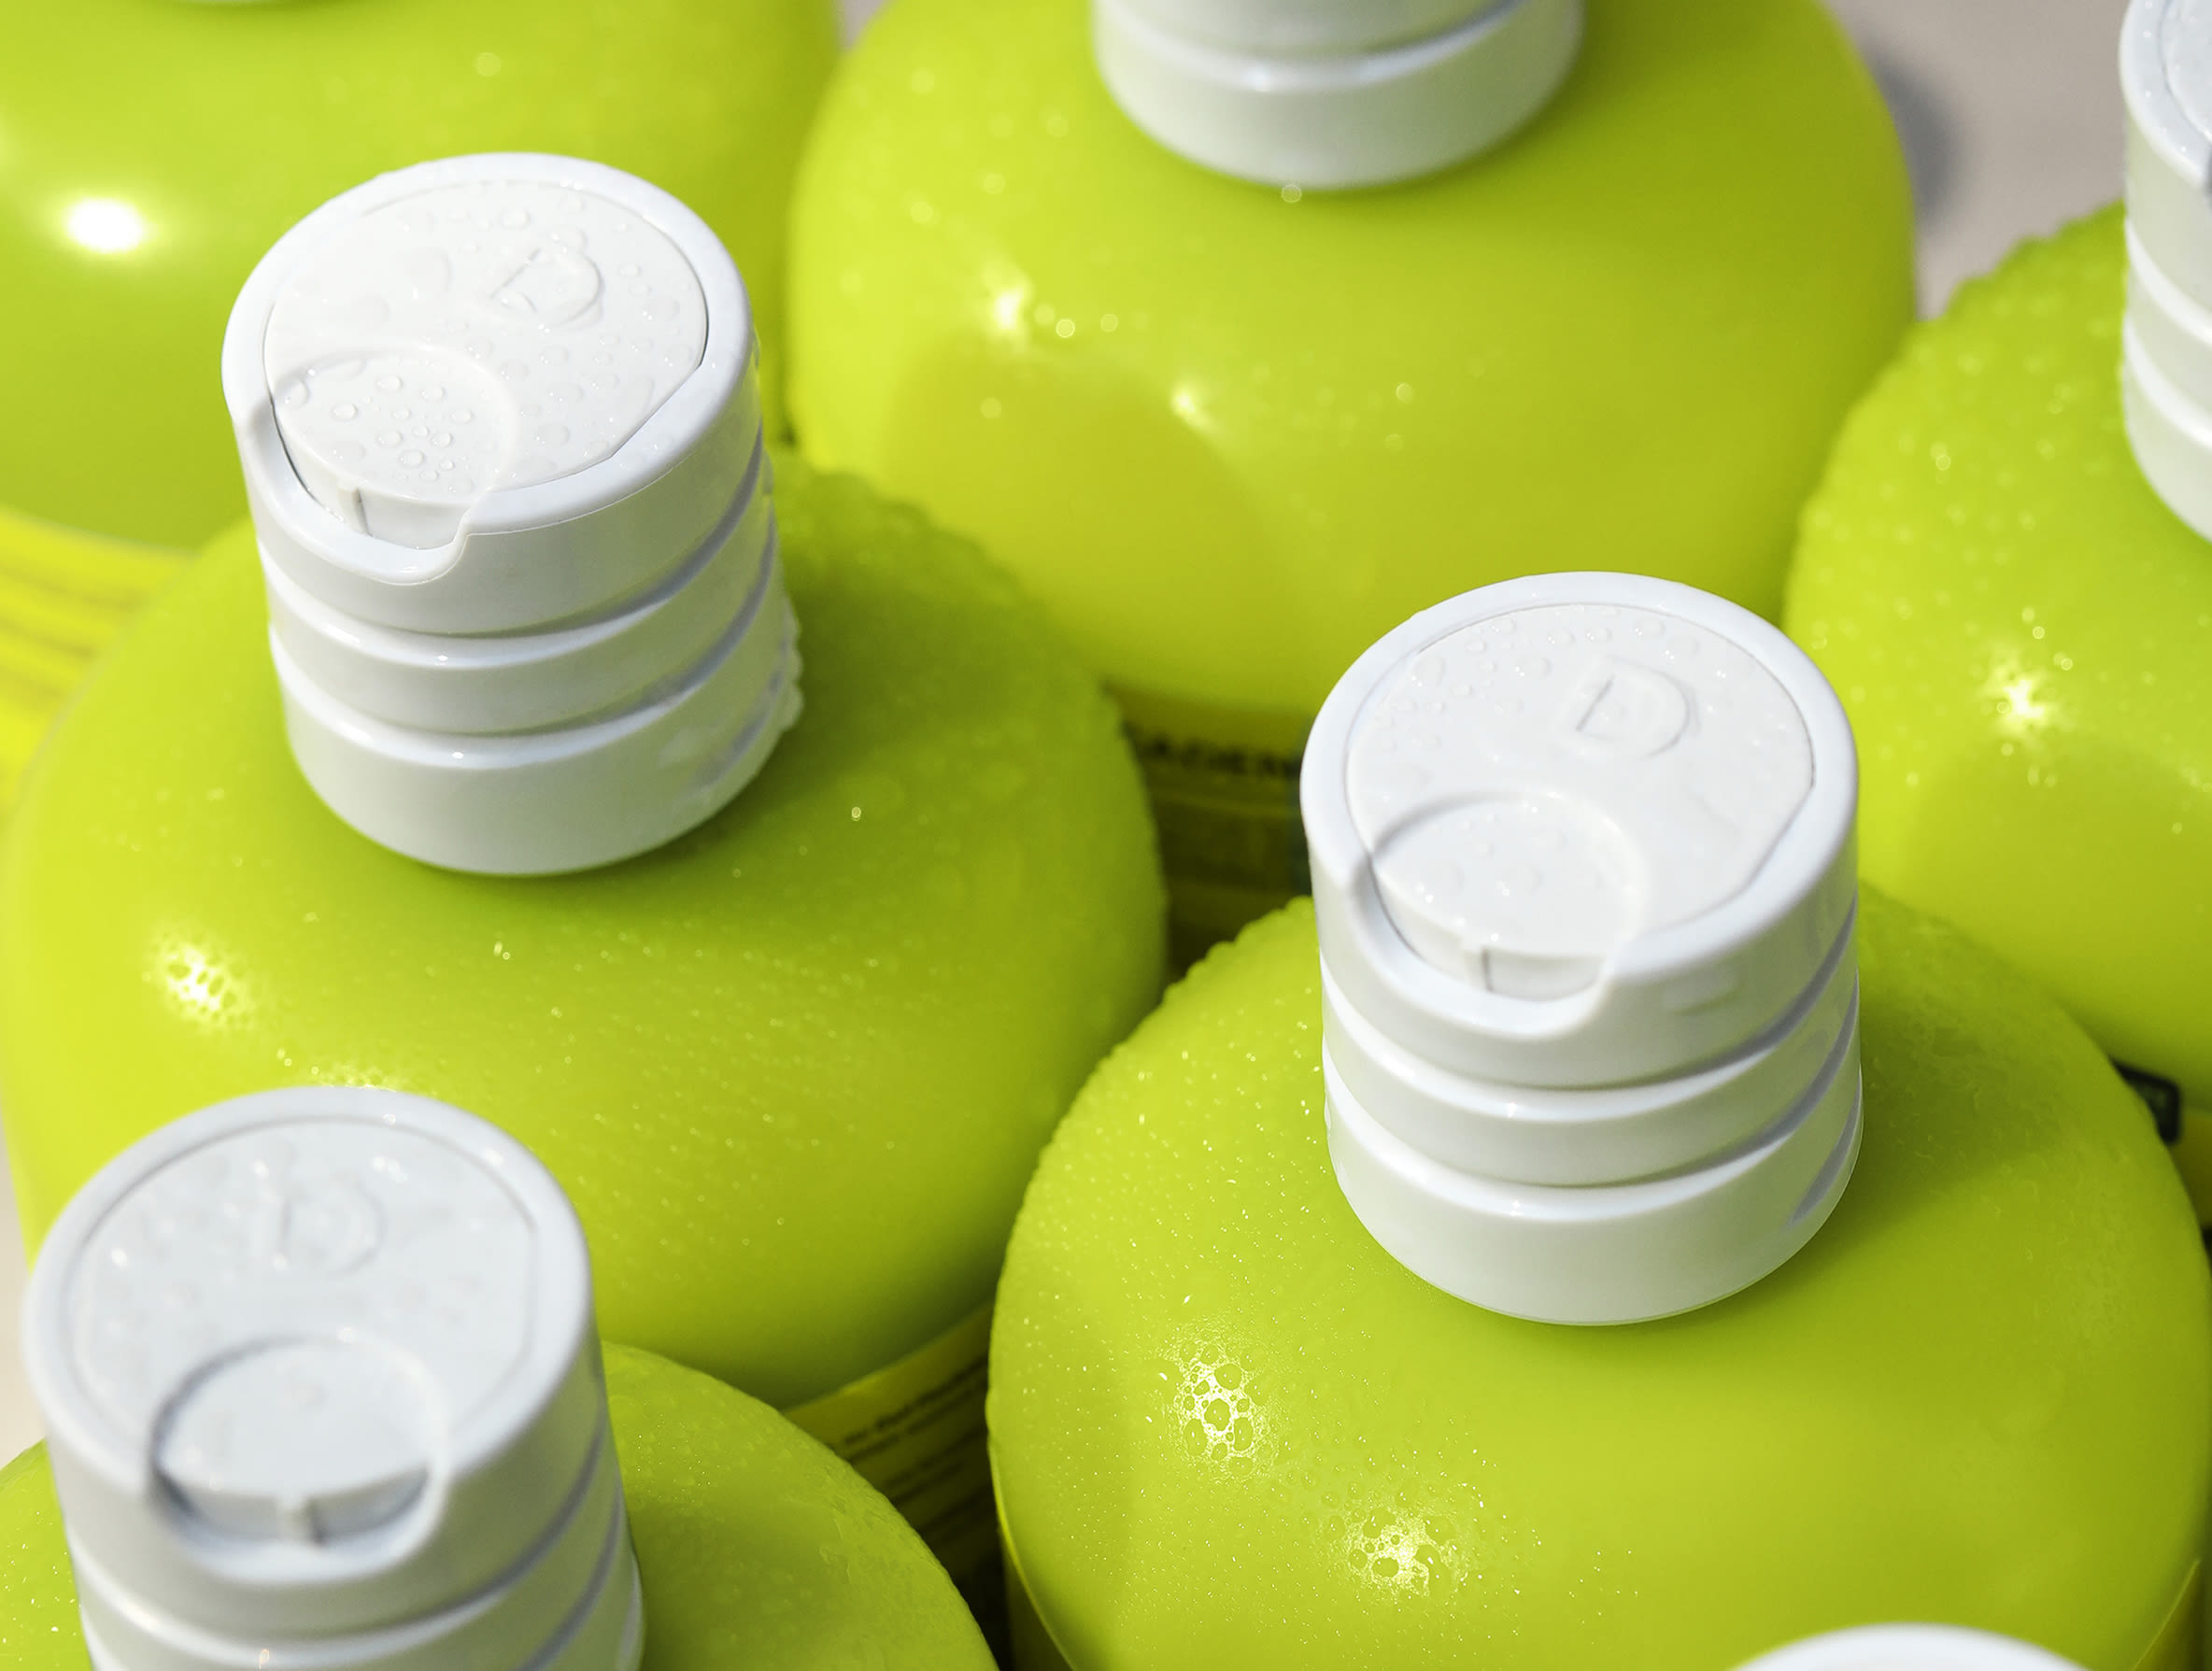 close up of green DevaCurl bottles and caps